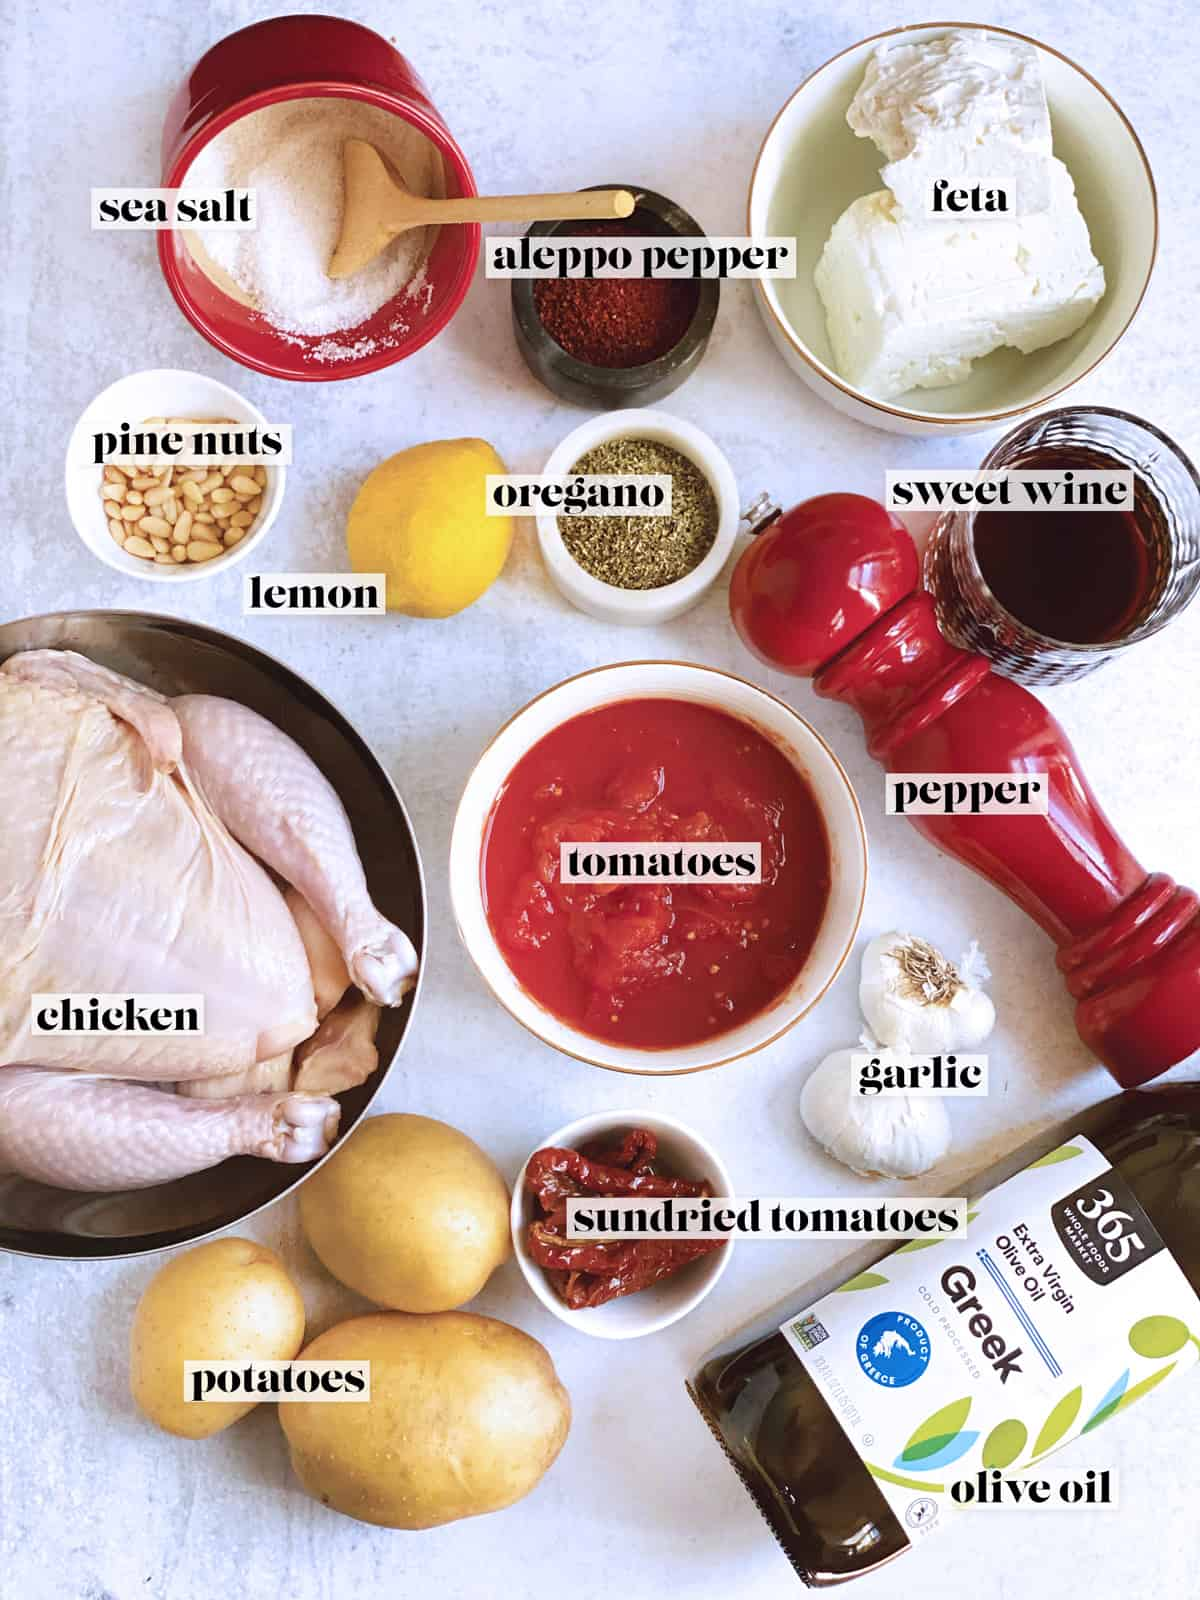 Ingredients image for stuffed chicken with tomatoes and feta.